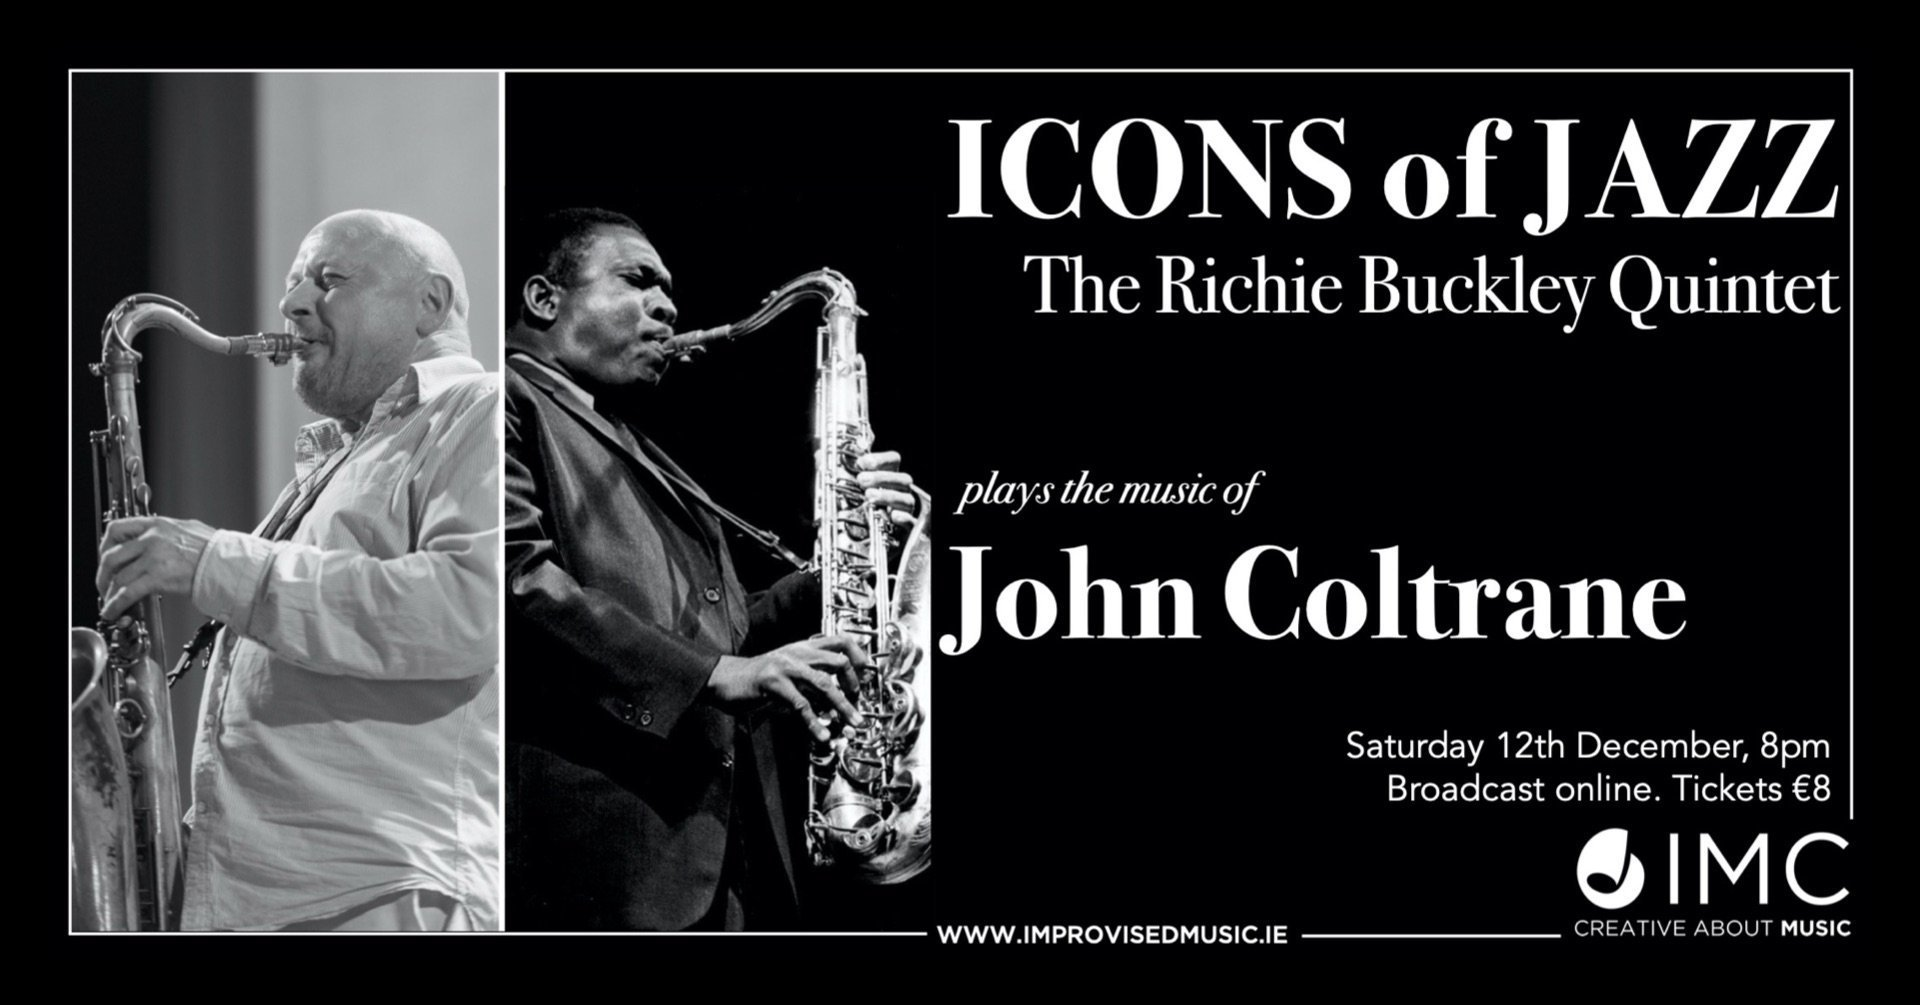 Icons of Jazz: Richie Buckley Quintet plays John Coltrane